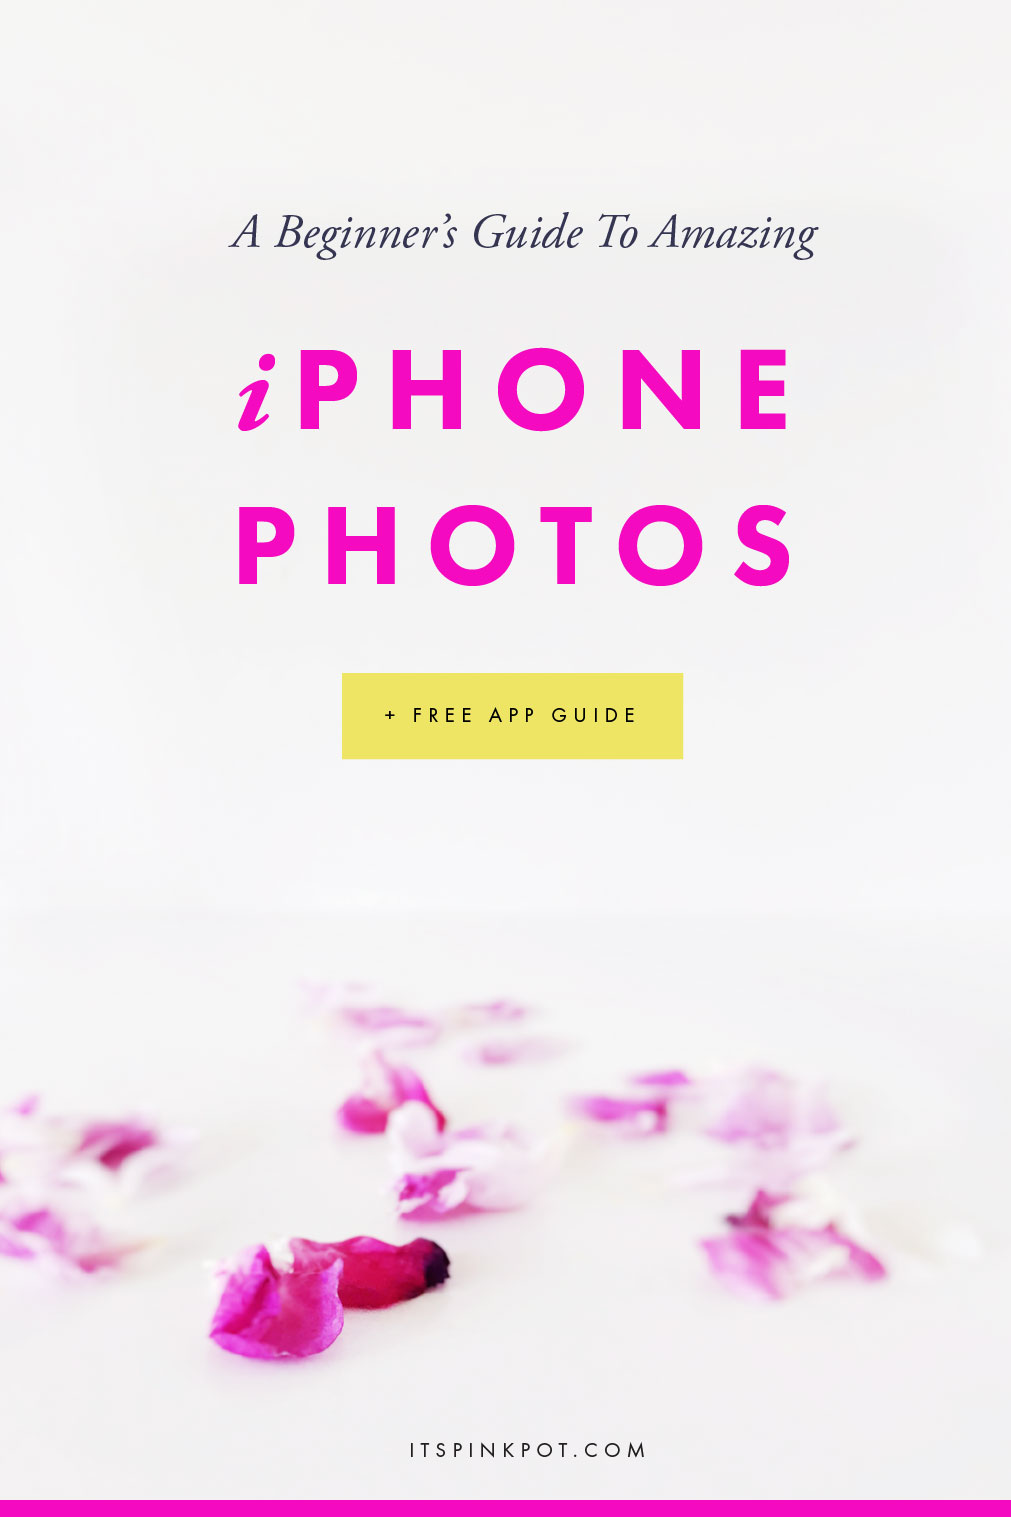 Did you know you can take high quality stock photos for your blog using your iPhone? Here's a beginner's guide to shooting amazing, high quality photos using your iPhone camera. Plus I have a FREE guide with the best apps and equipment for iPhone photography. Click here to download now